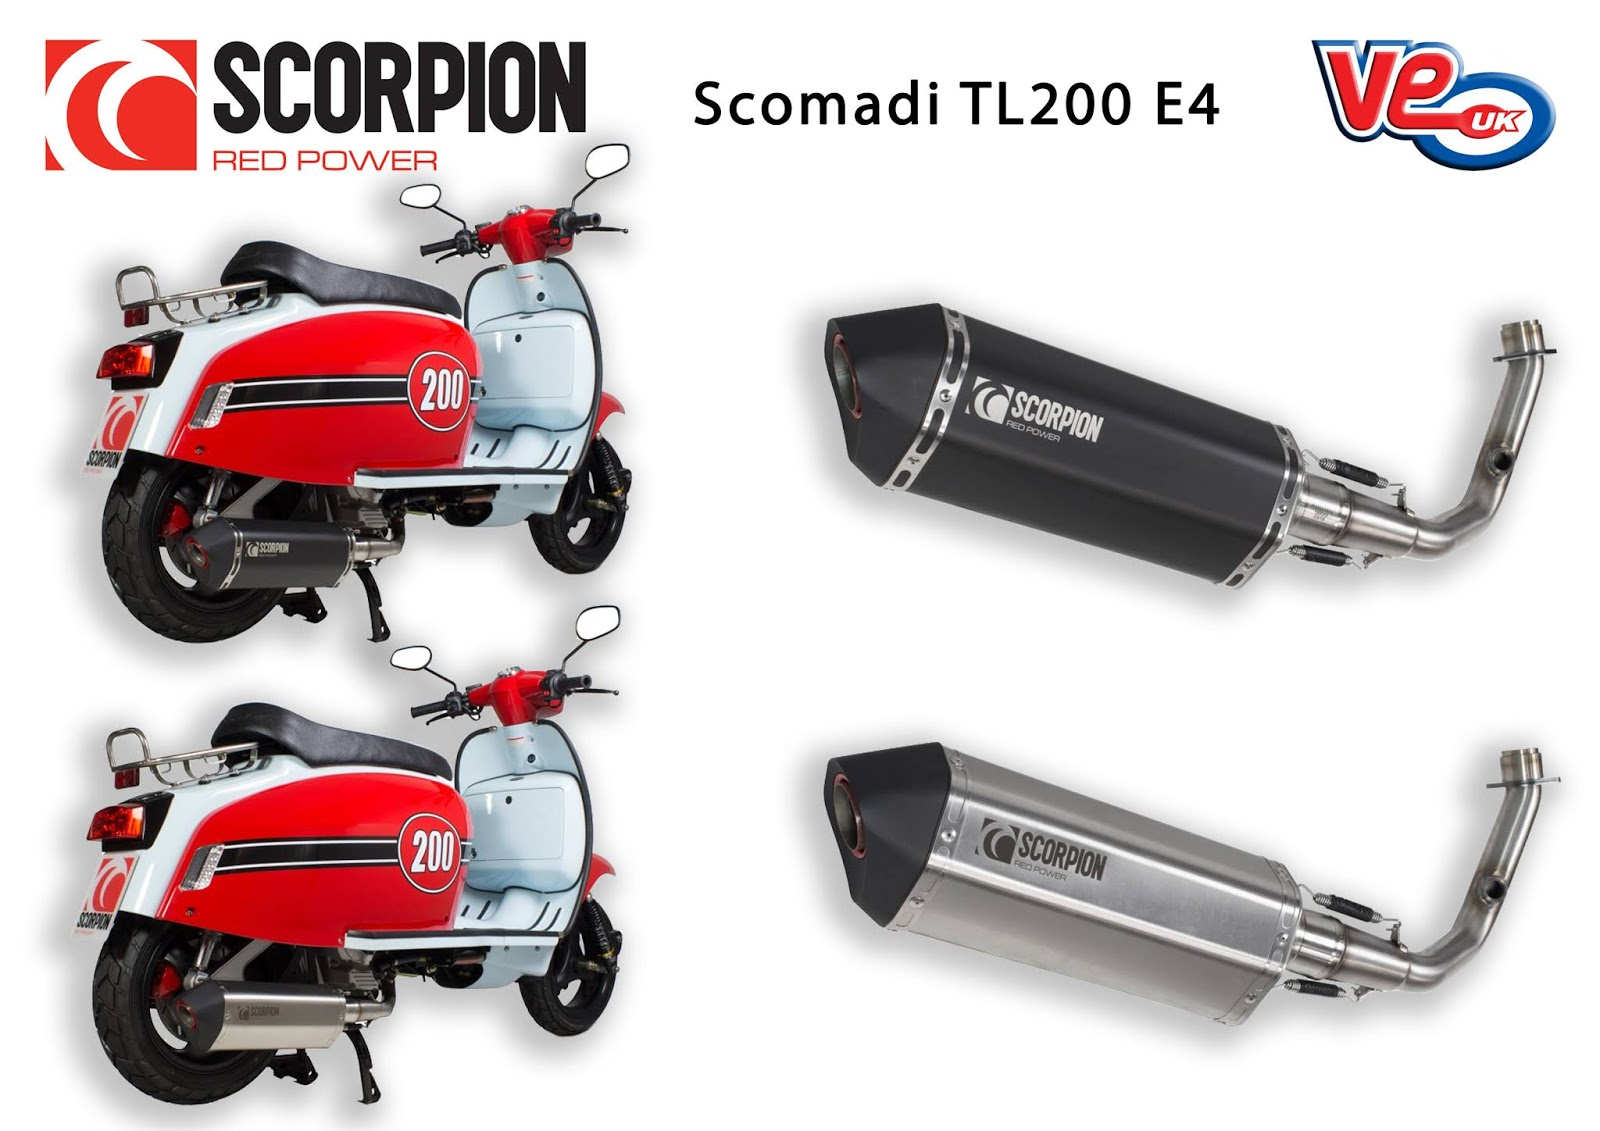 Scorpion Serket Exhaust for the Scomadi TL 200 Euro 4